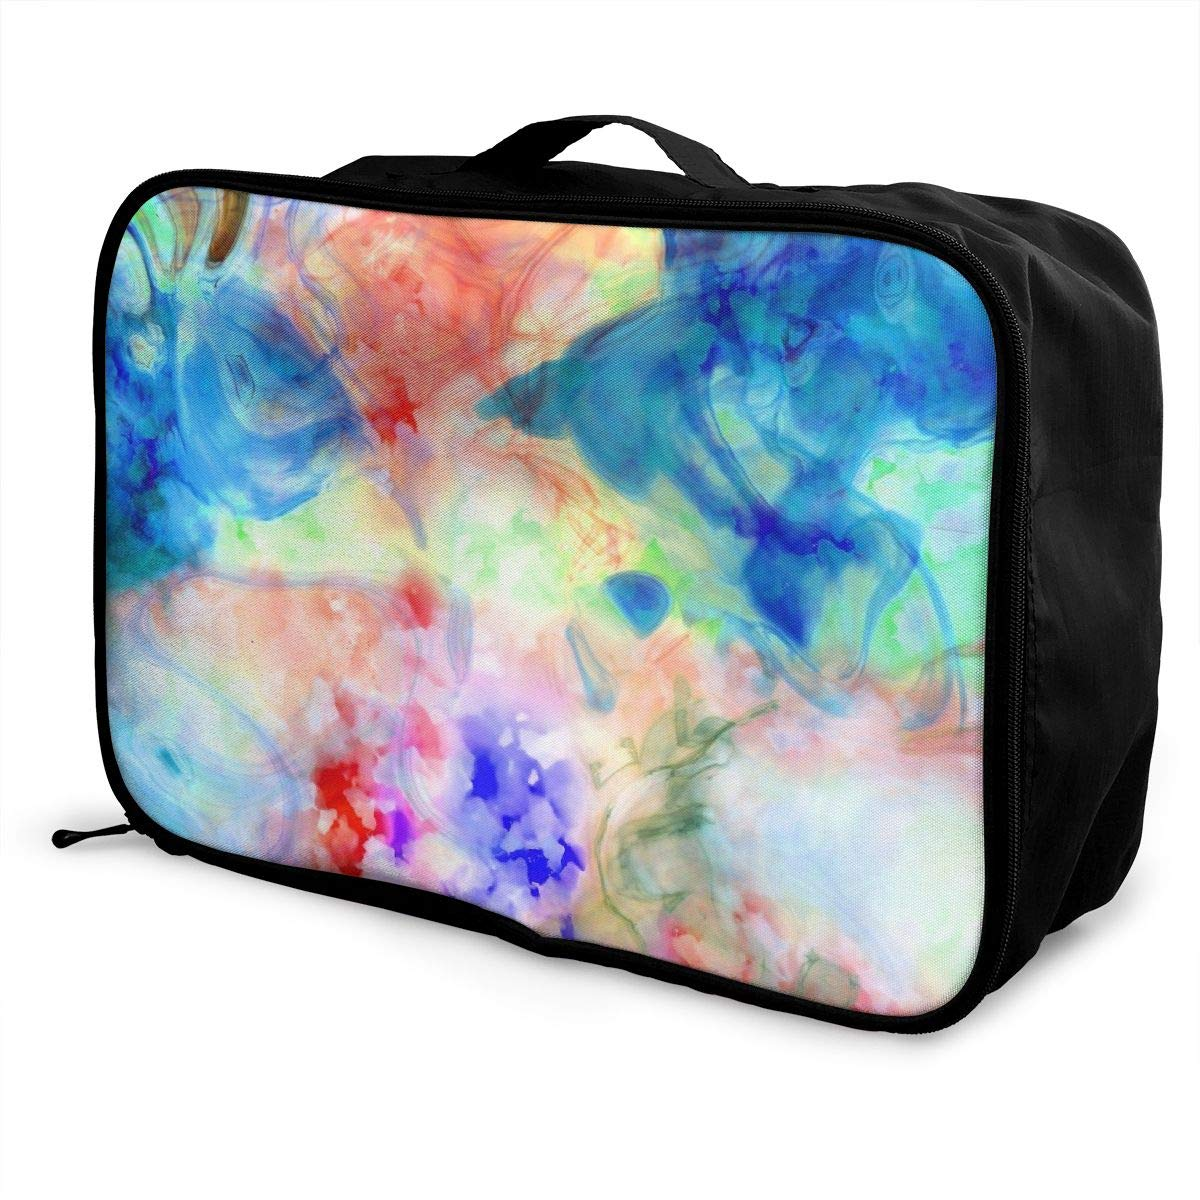 Art Abstract Colorful Travel Lightweight Waterproof Foldable Storage Carry Luggage Large Capacity Portable Luggage Bag Duffel Bag